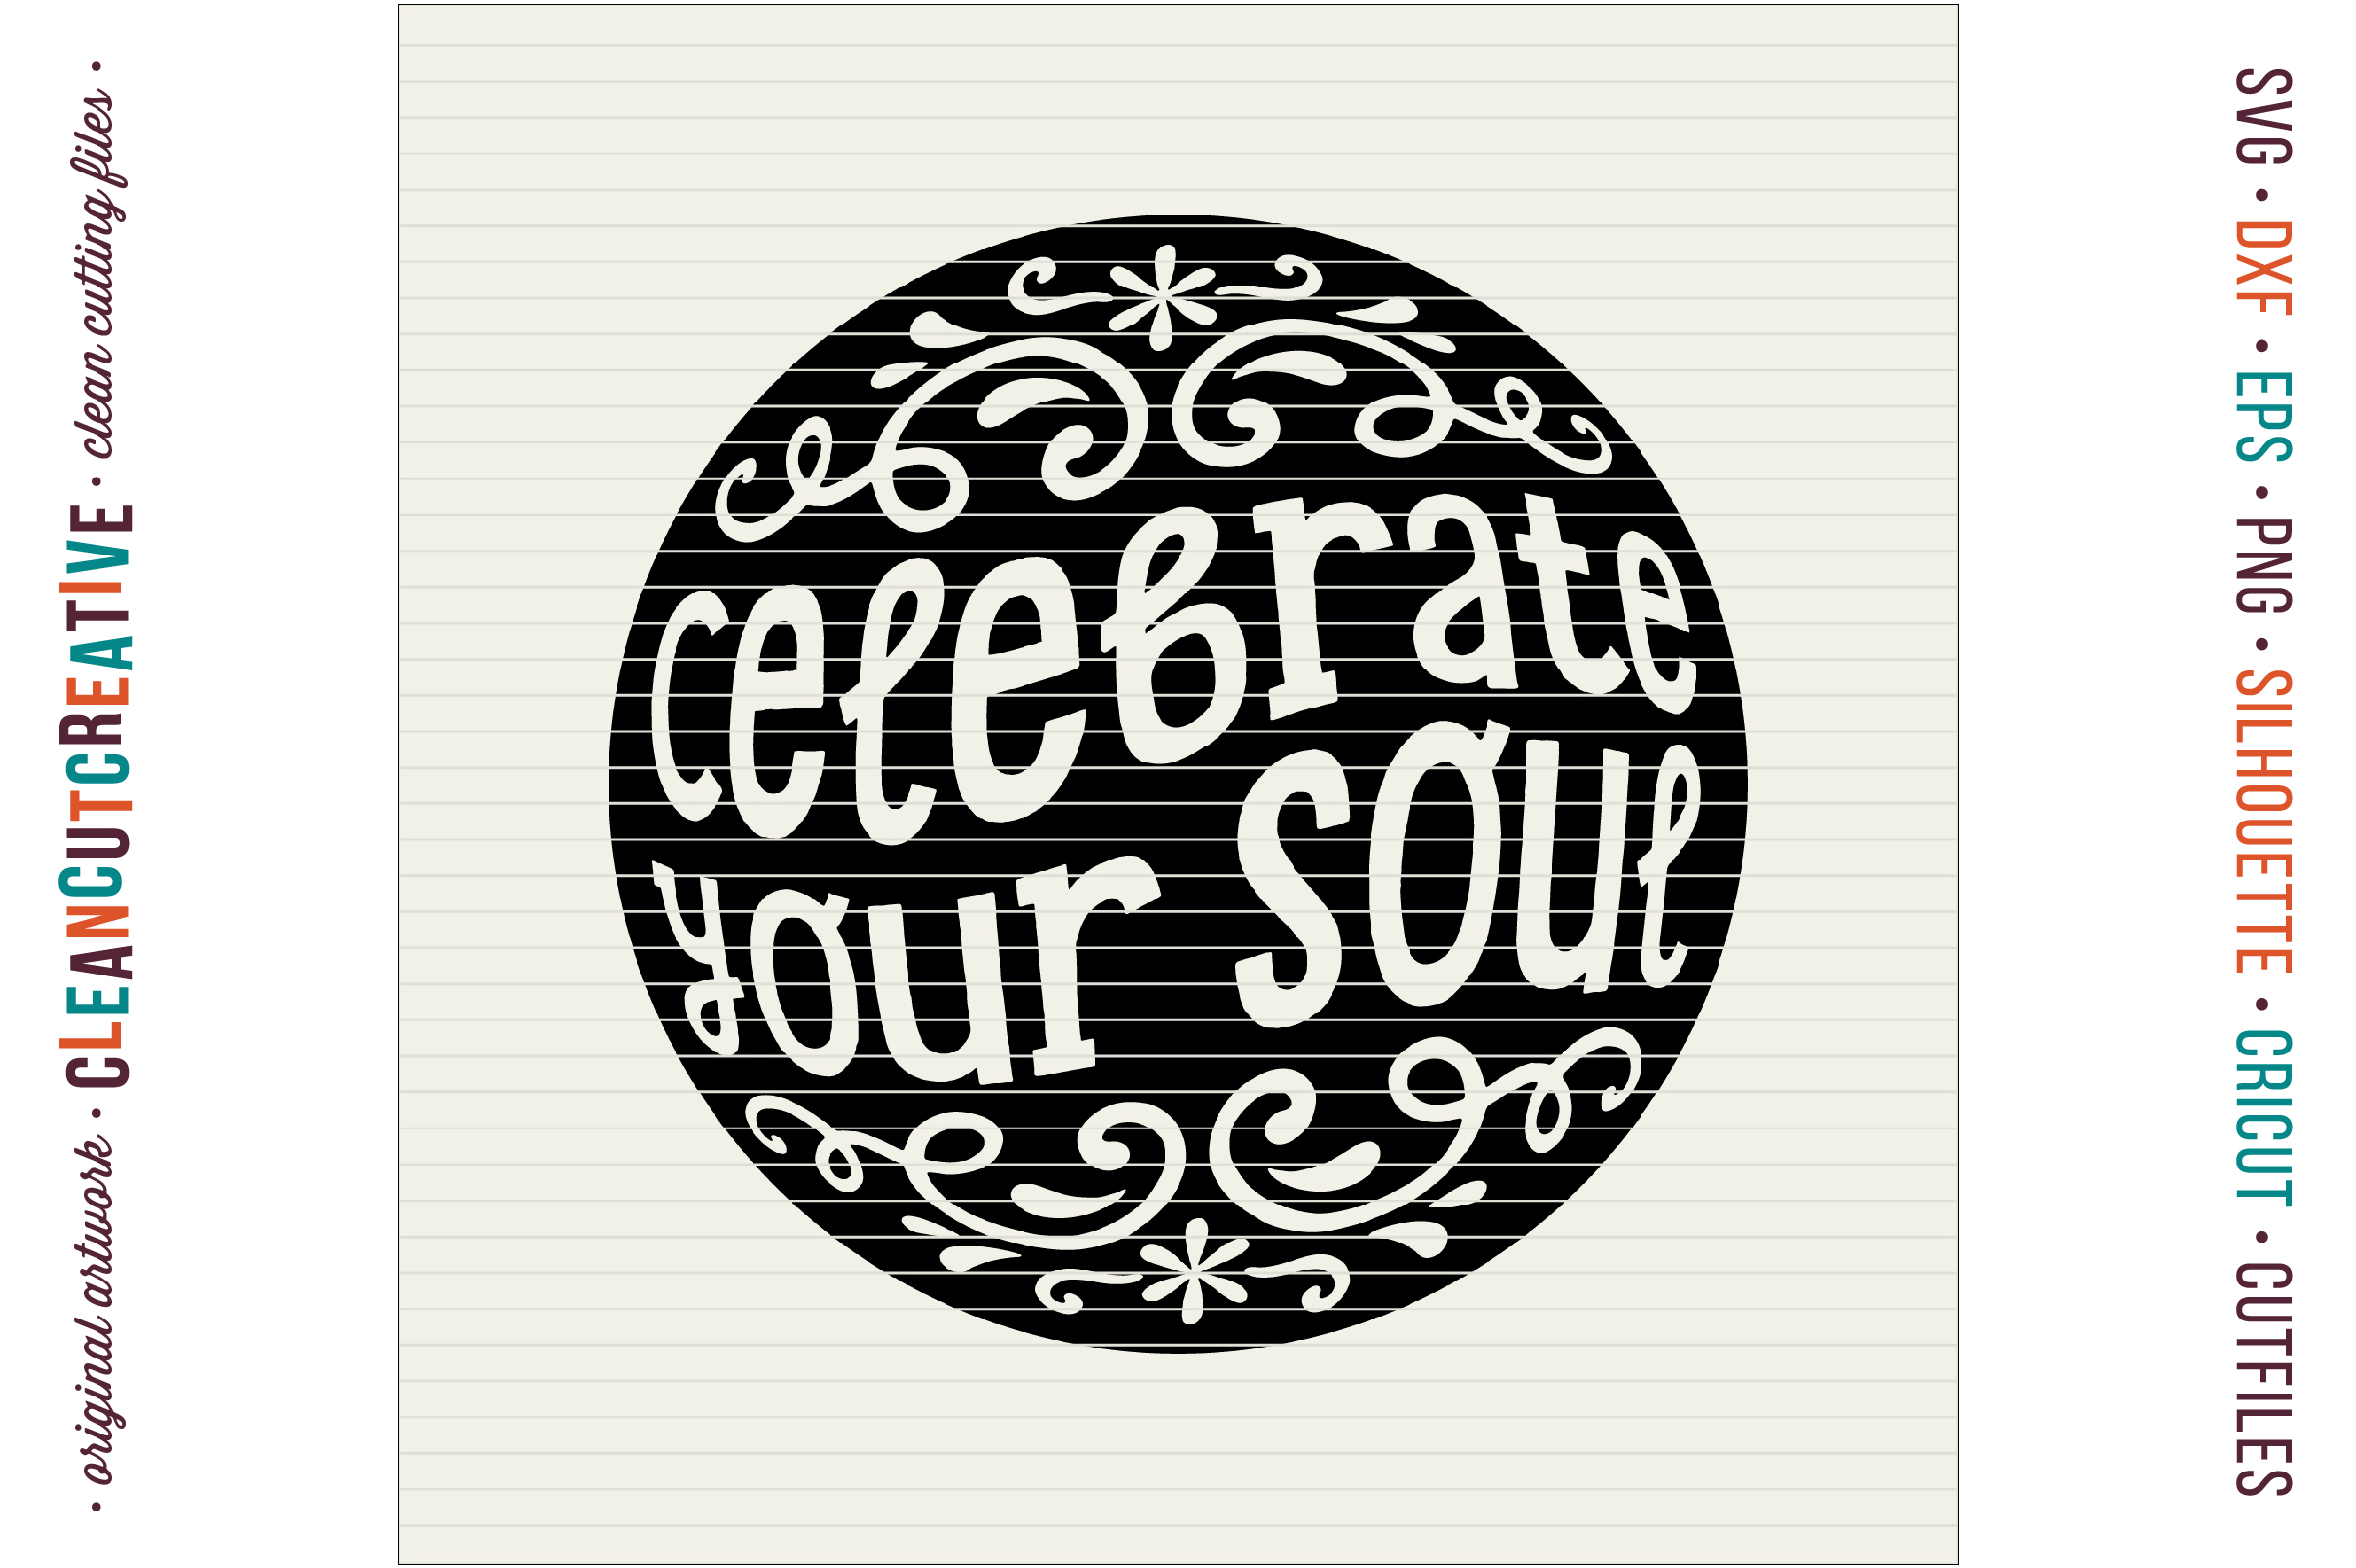 CELEBRATE YOUR SOUL! - Inspiring Quote design for crafters example image 4